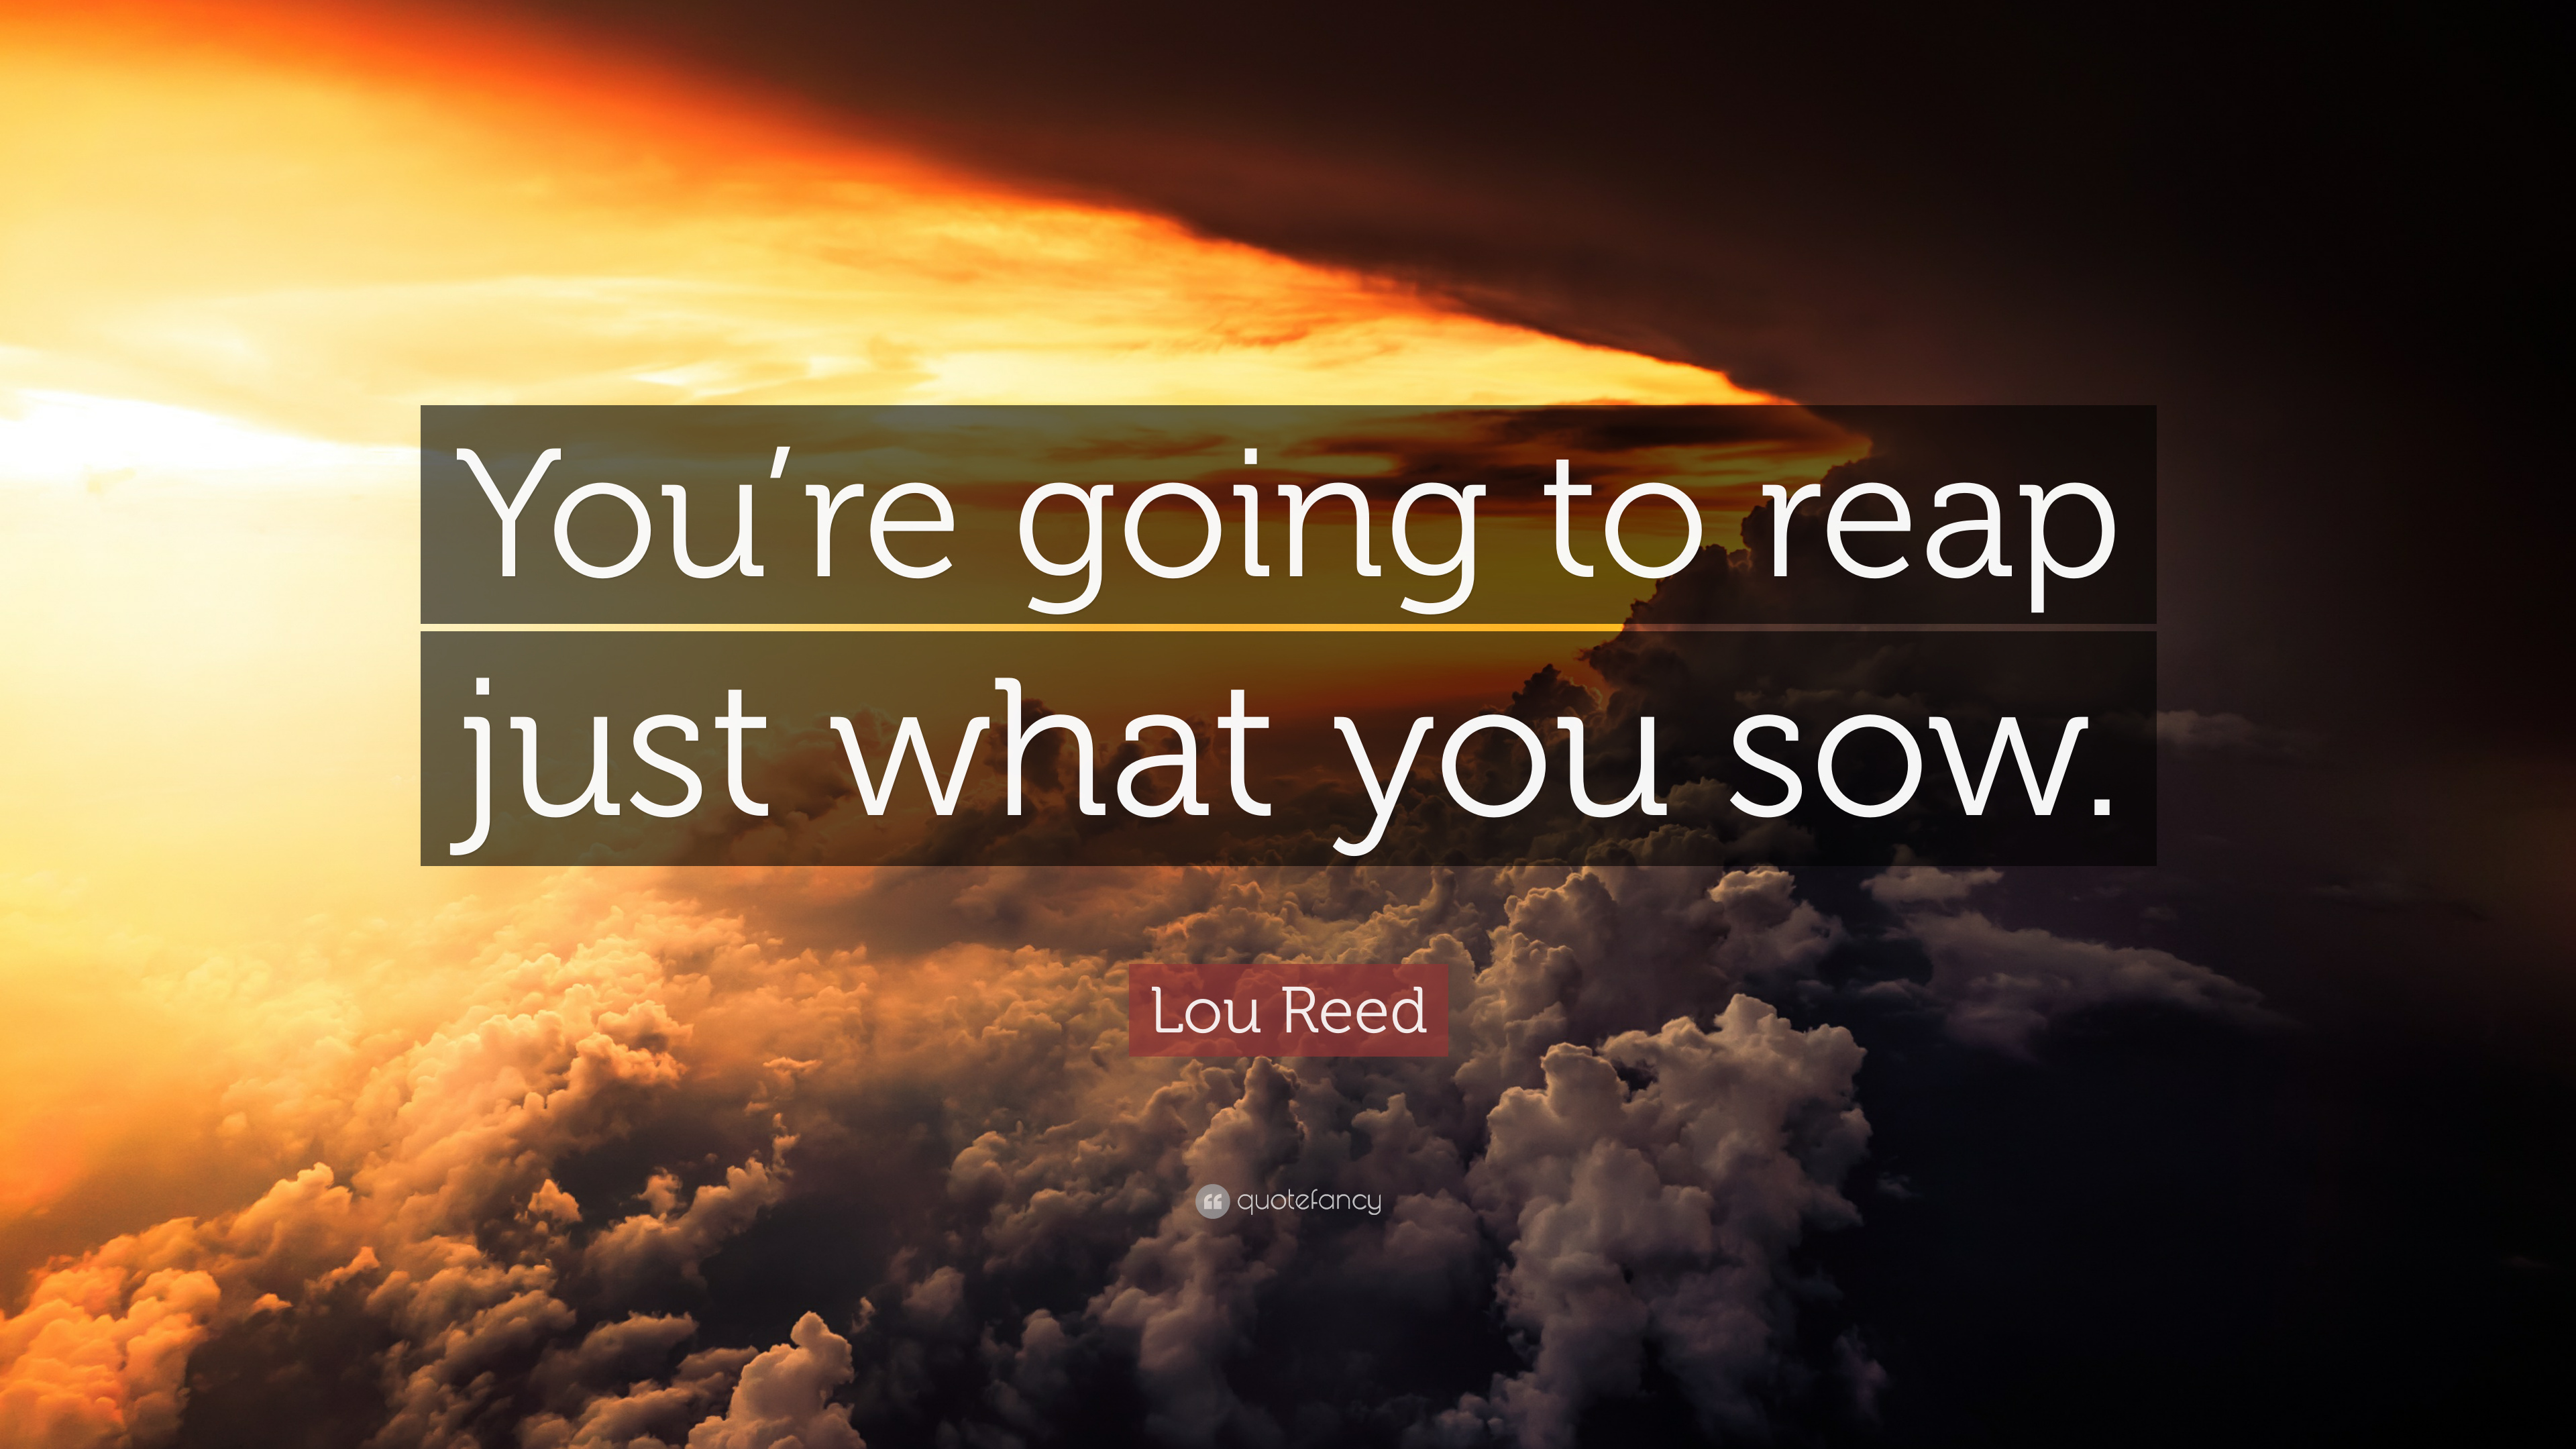 Lou Reed Quote: Youre going to reap just what you sow